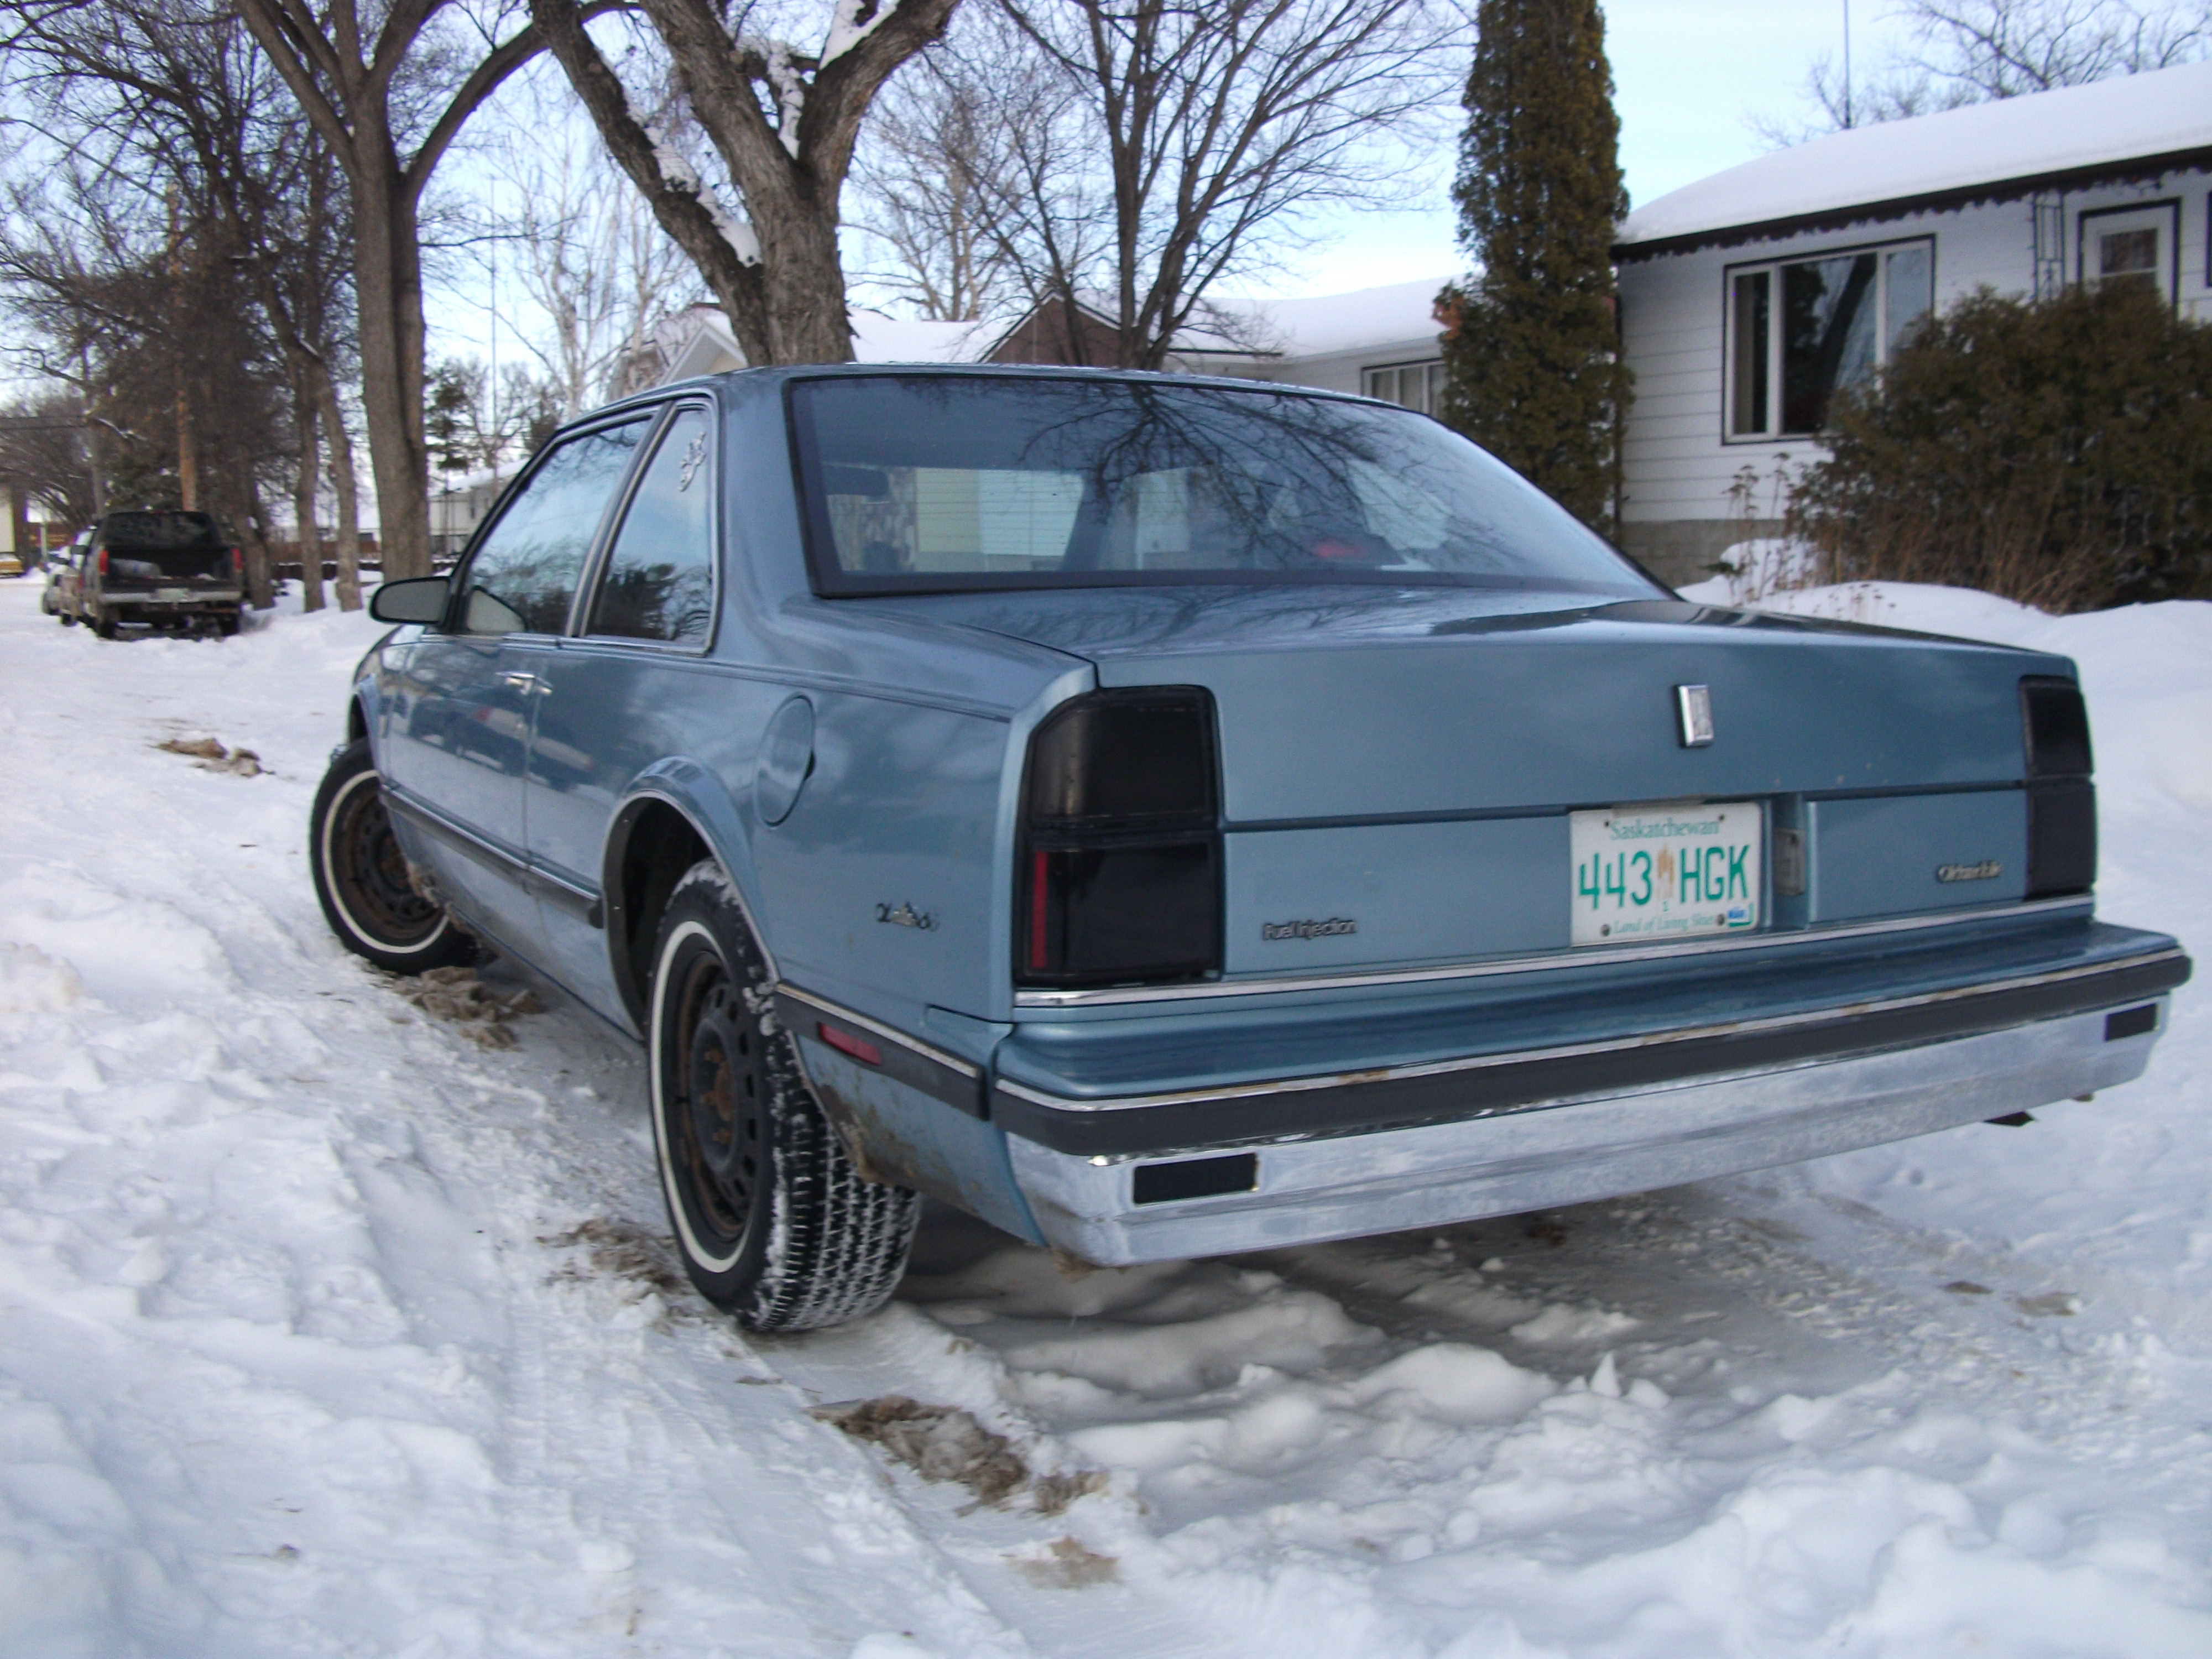 LuxuryOrNothin 1986 Oldsmobile Delta 88 14956624